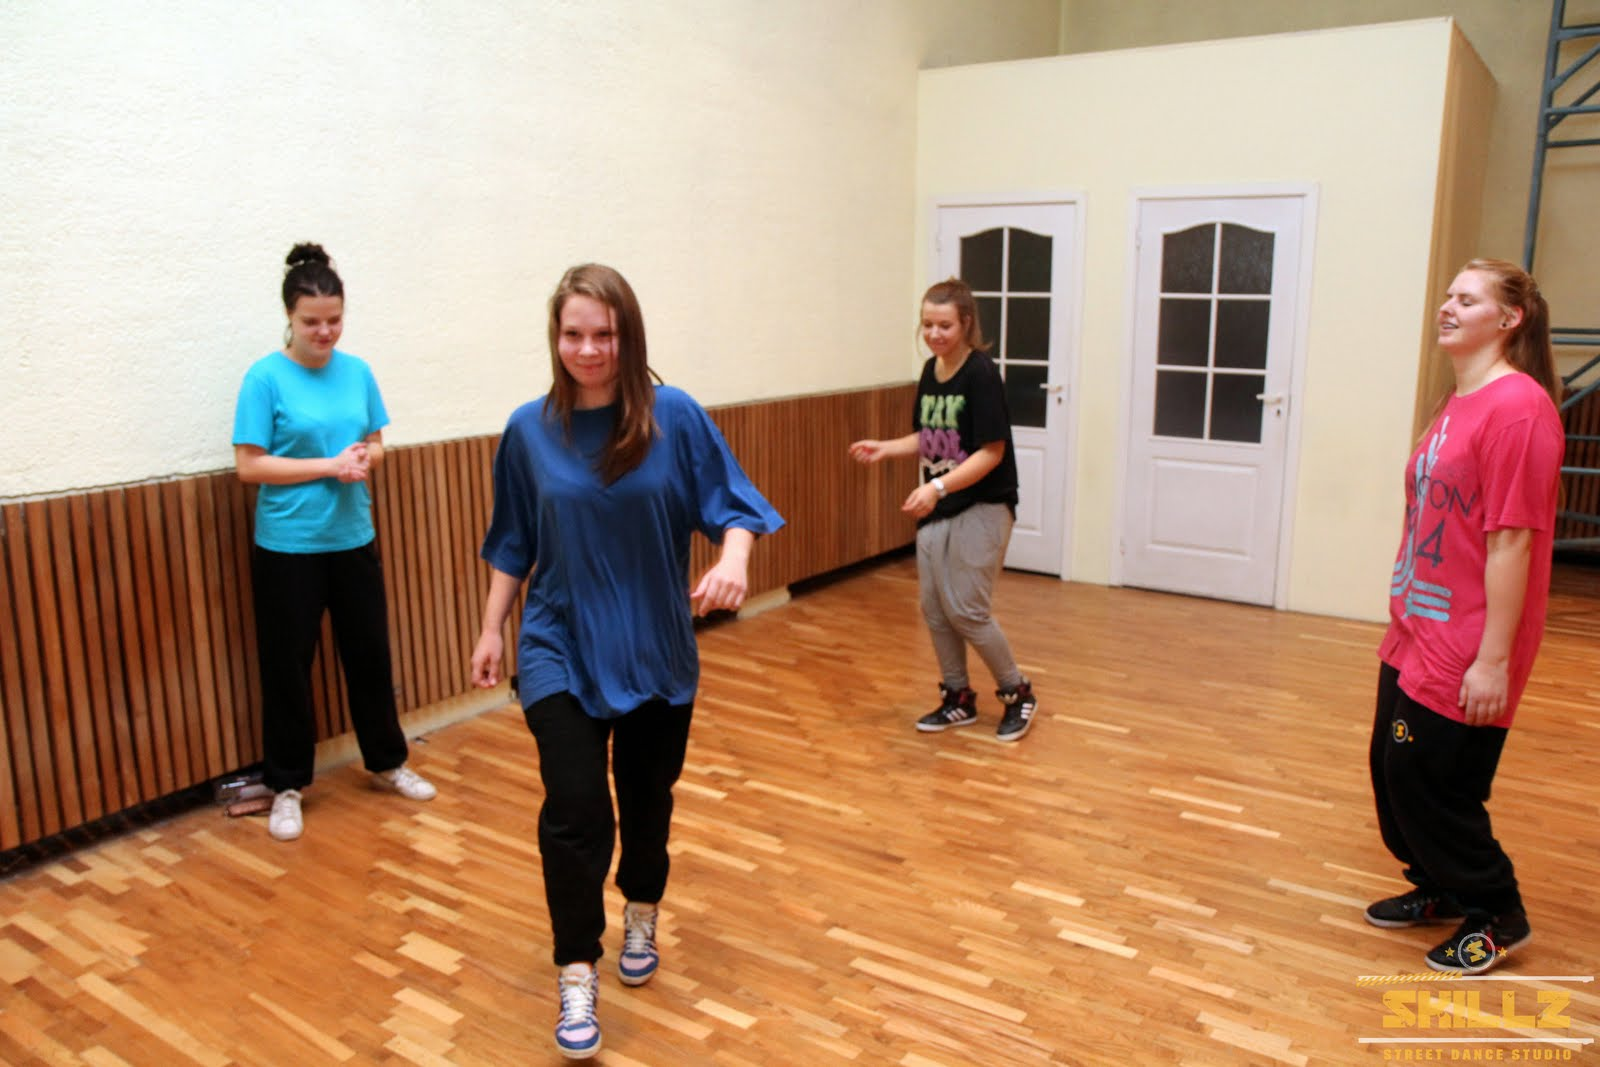 Hip- Hop workshop with Shaadow (UK) - IMG_1871.jpg